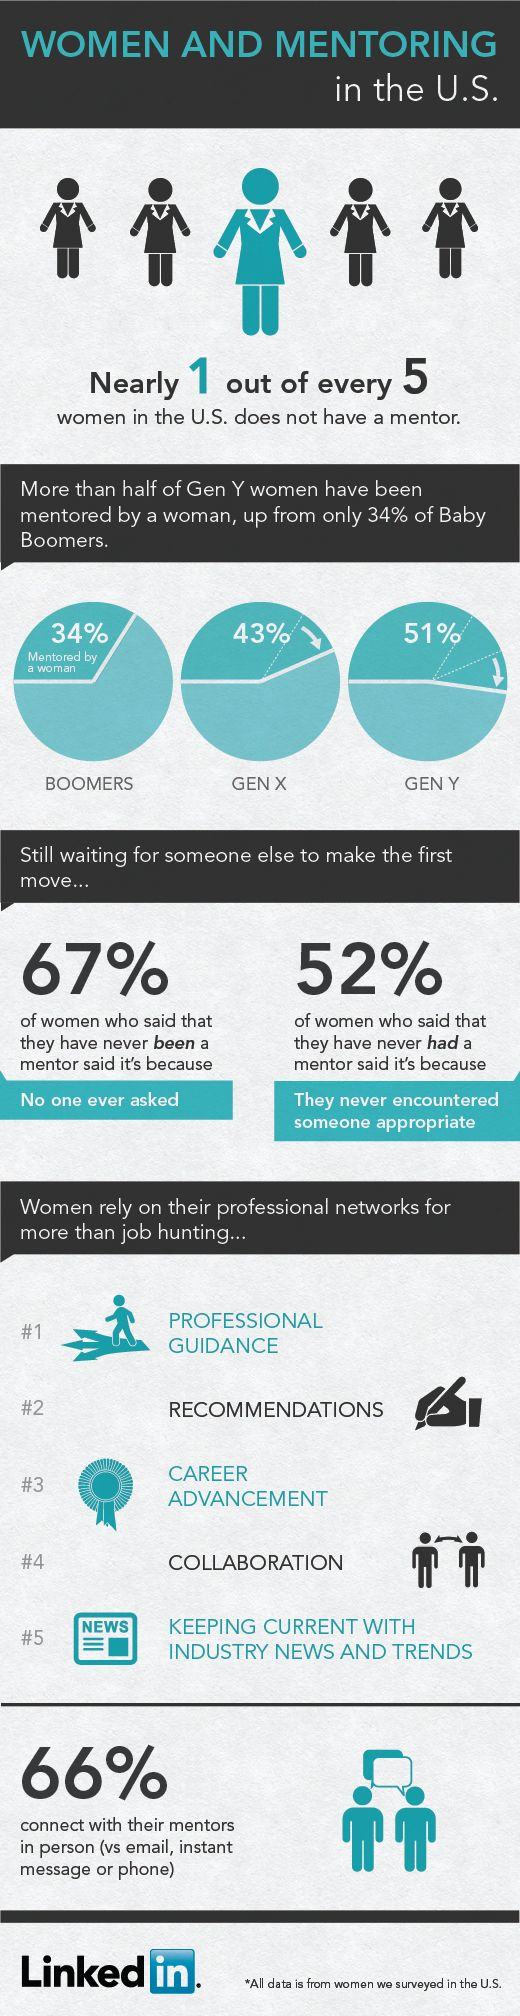 Women and mentoring. If you aren't experienced enough to be a mentor, FIND ONE. If ARE experienced enough, find a young lady who needs mentoring. Reach out to HER. It's your duty.